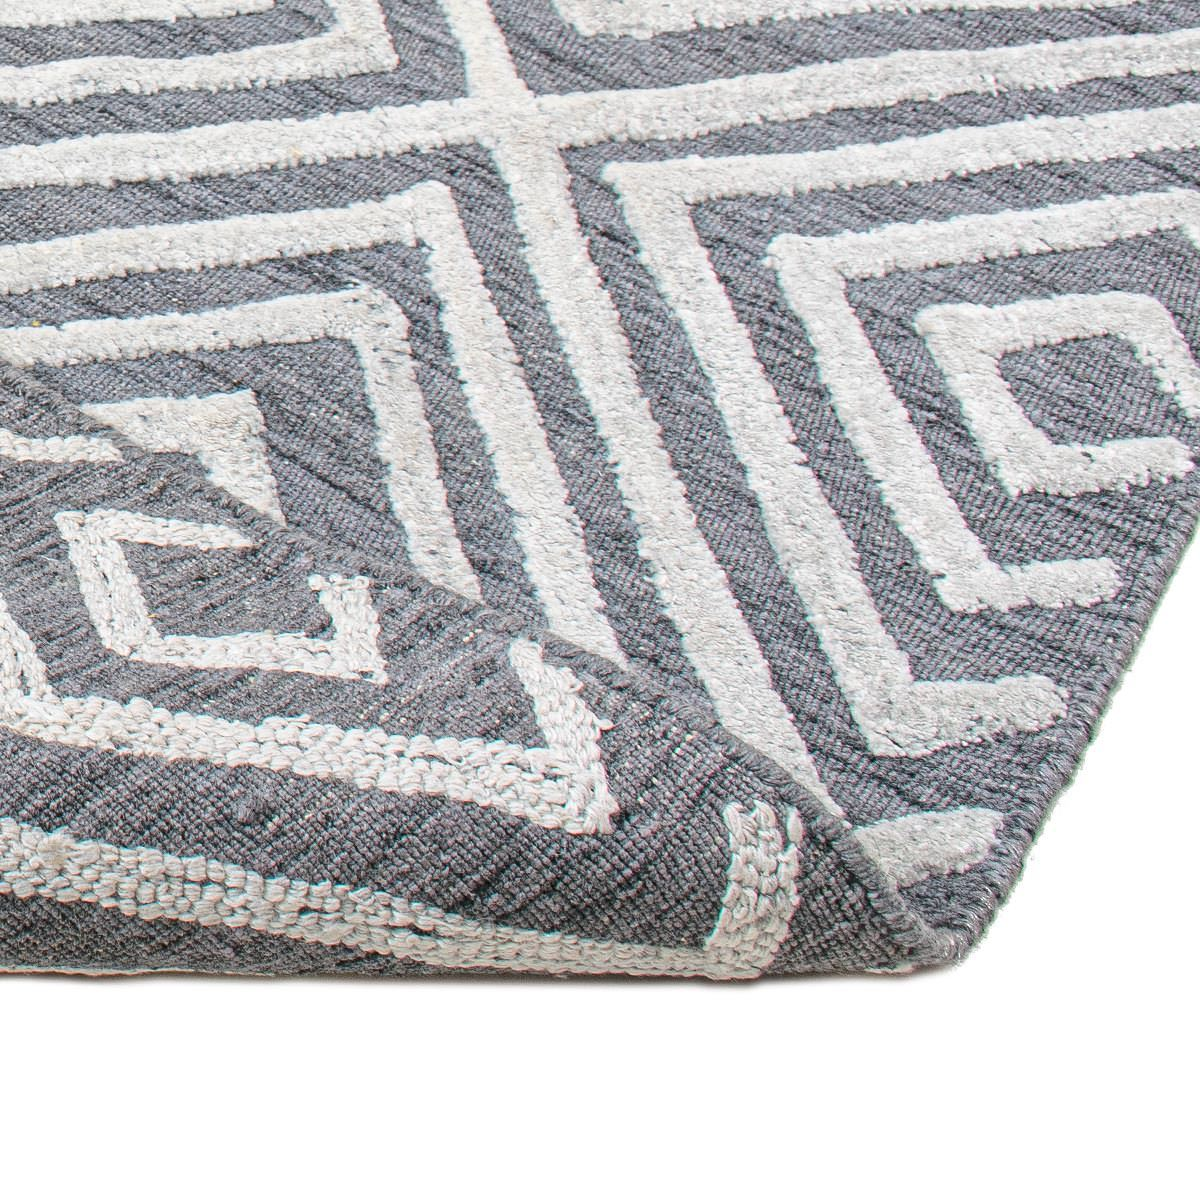 Zara Rug 01 Grey/White 2